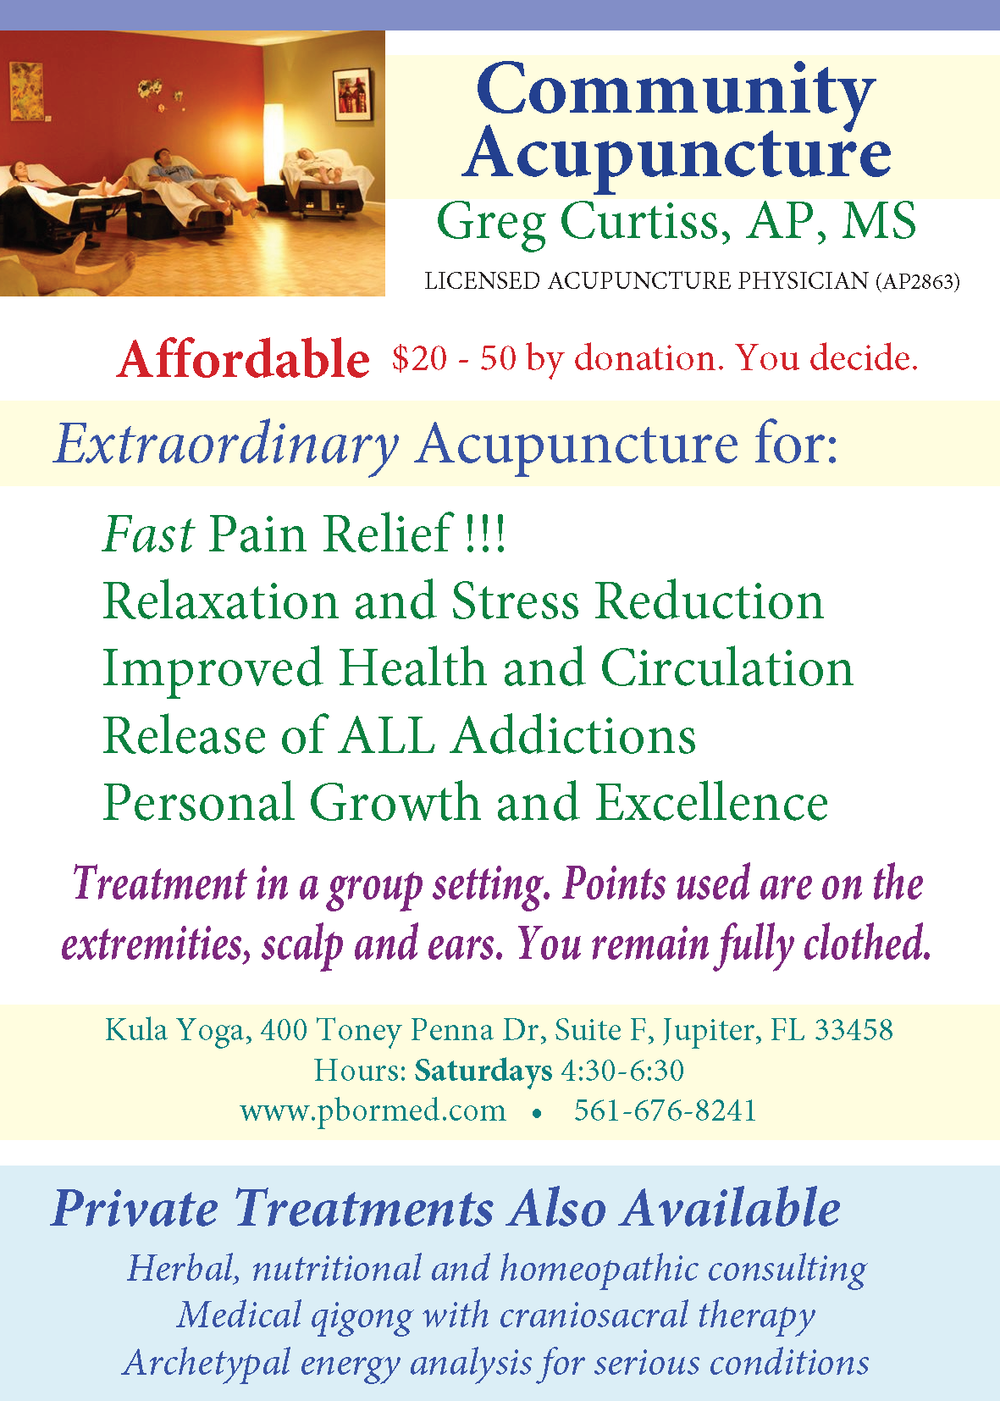 Flyer for Community Acupuncture - Kula HAC - Jul 28 2016.png